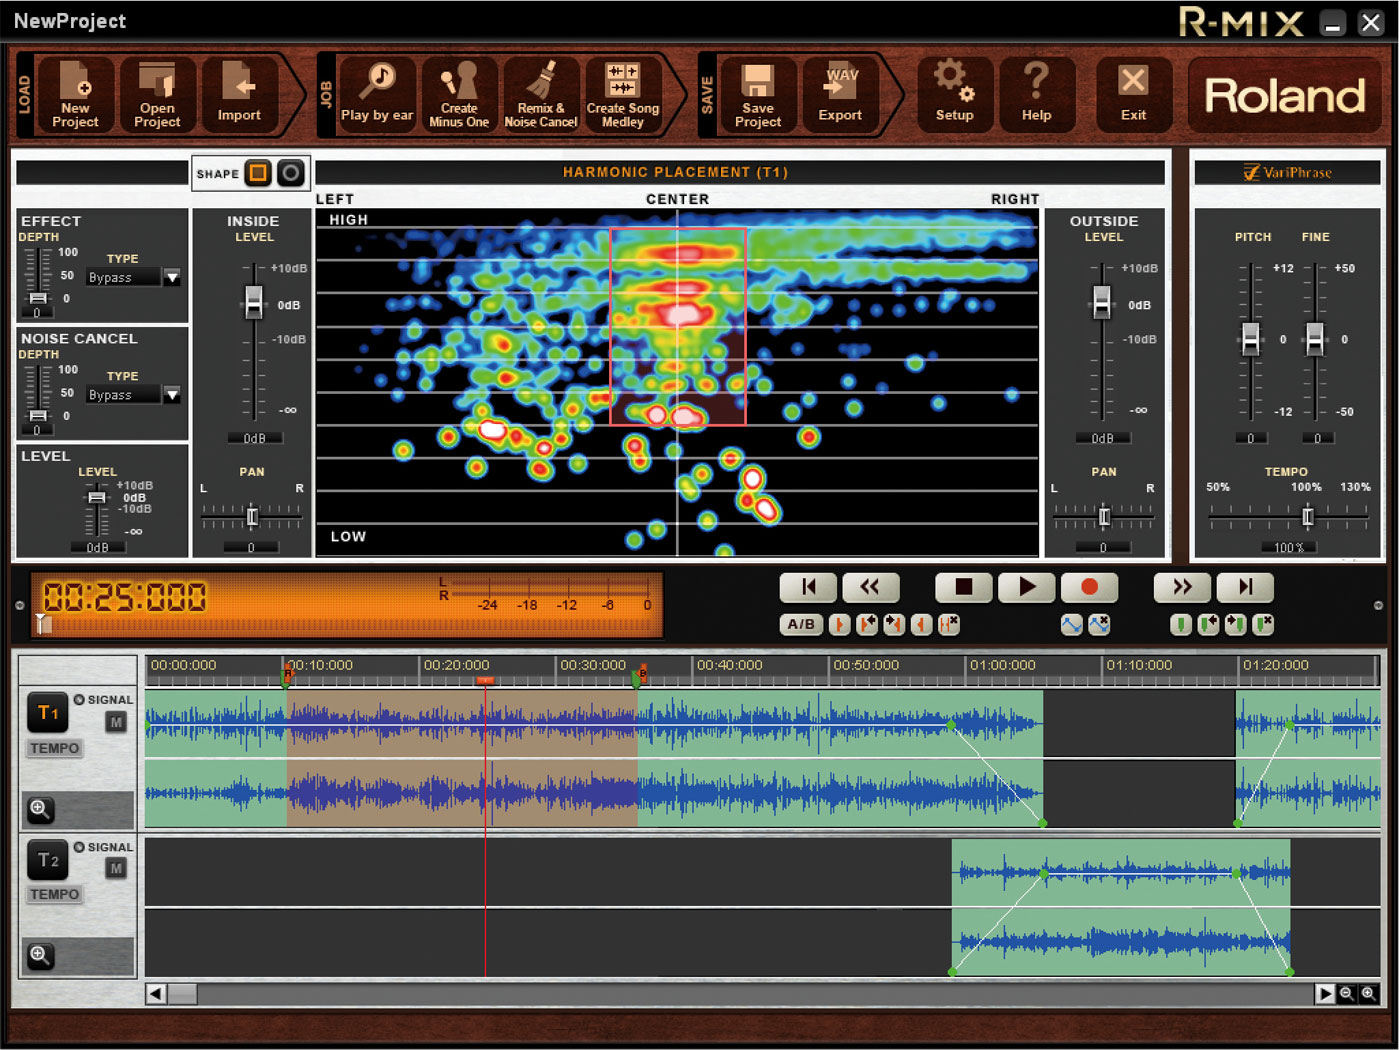 Roland R-Mix Manipulation Software.